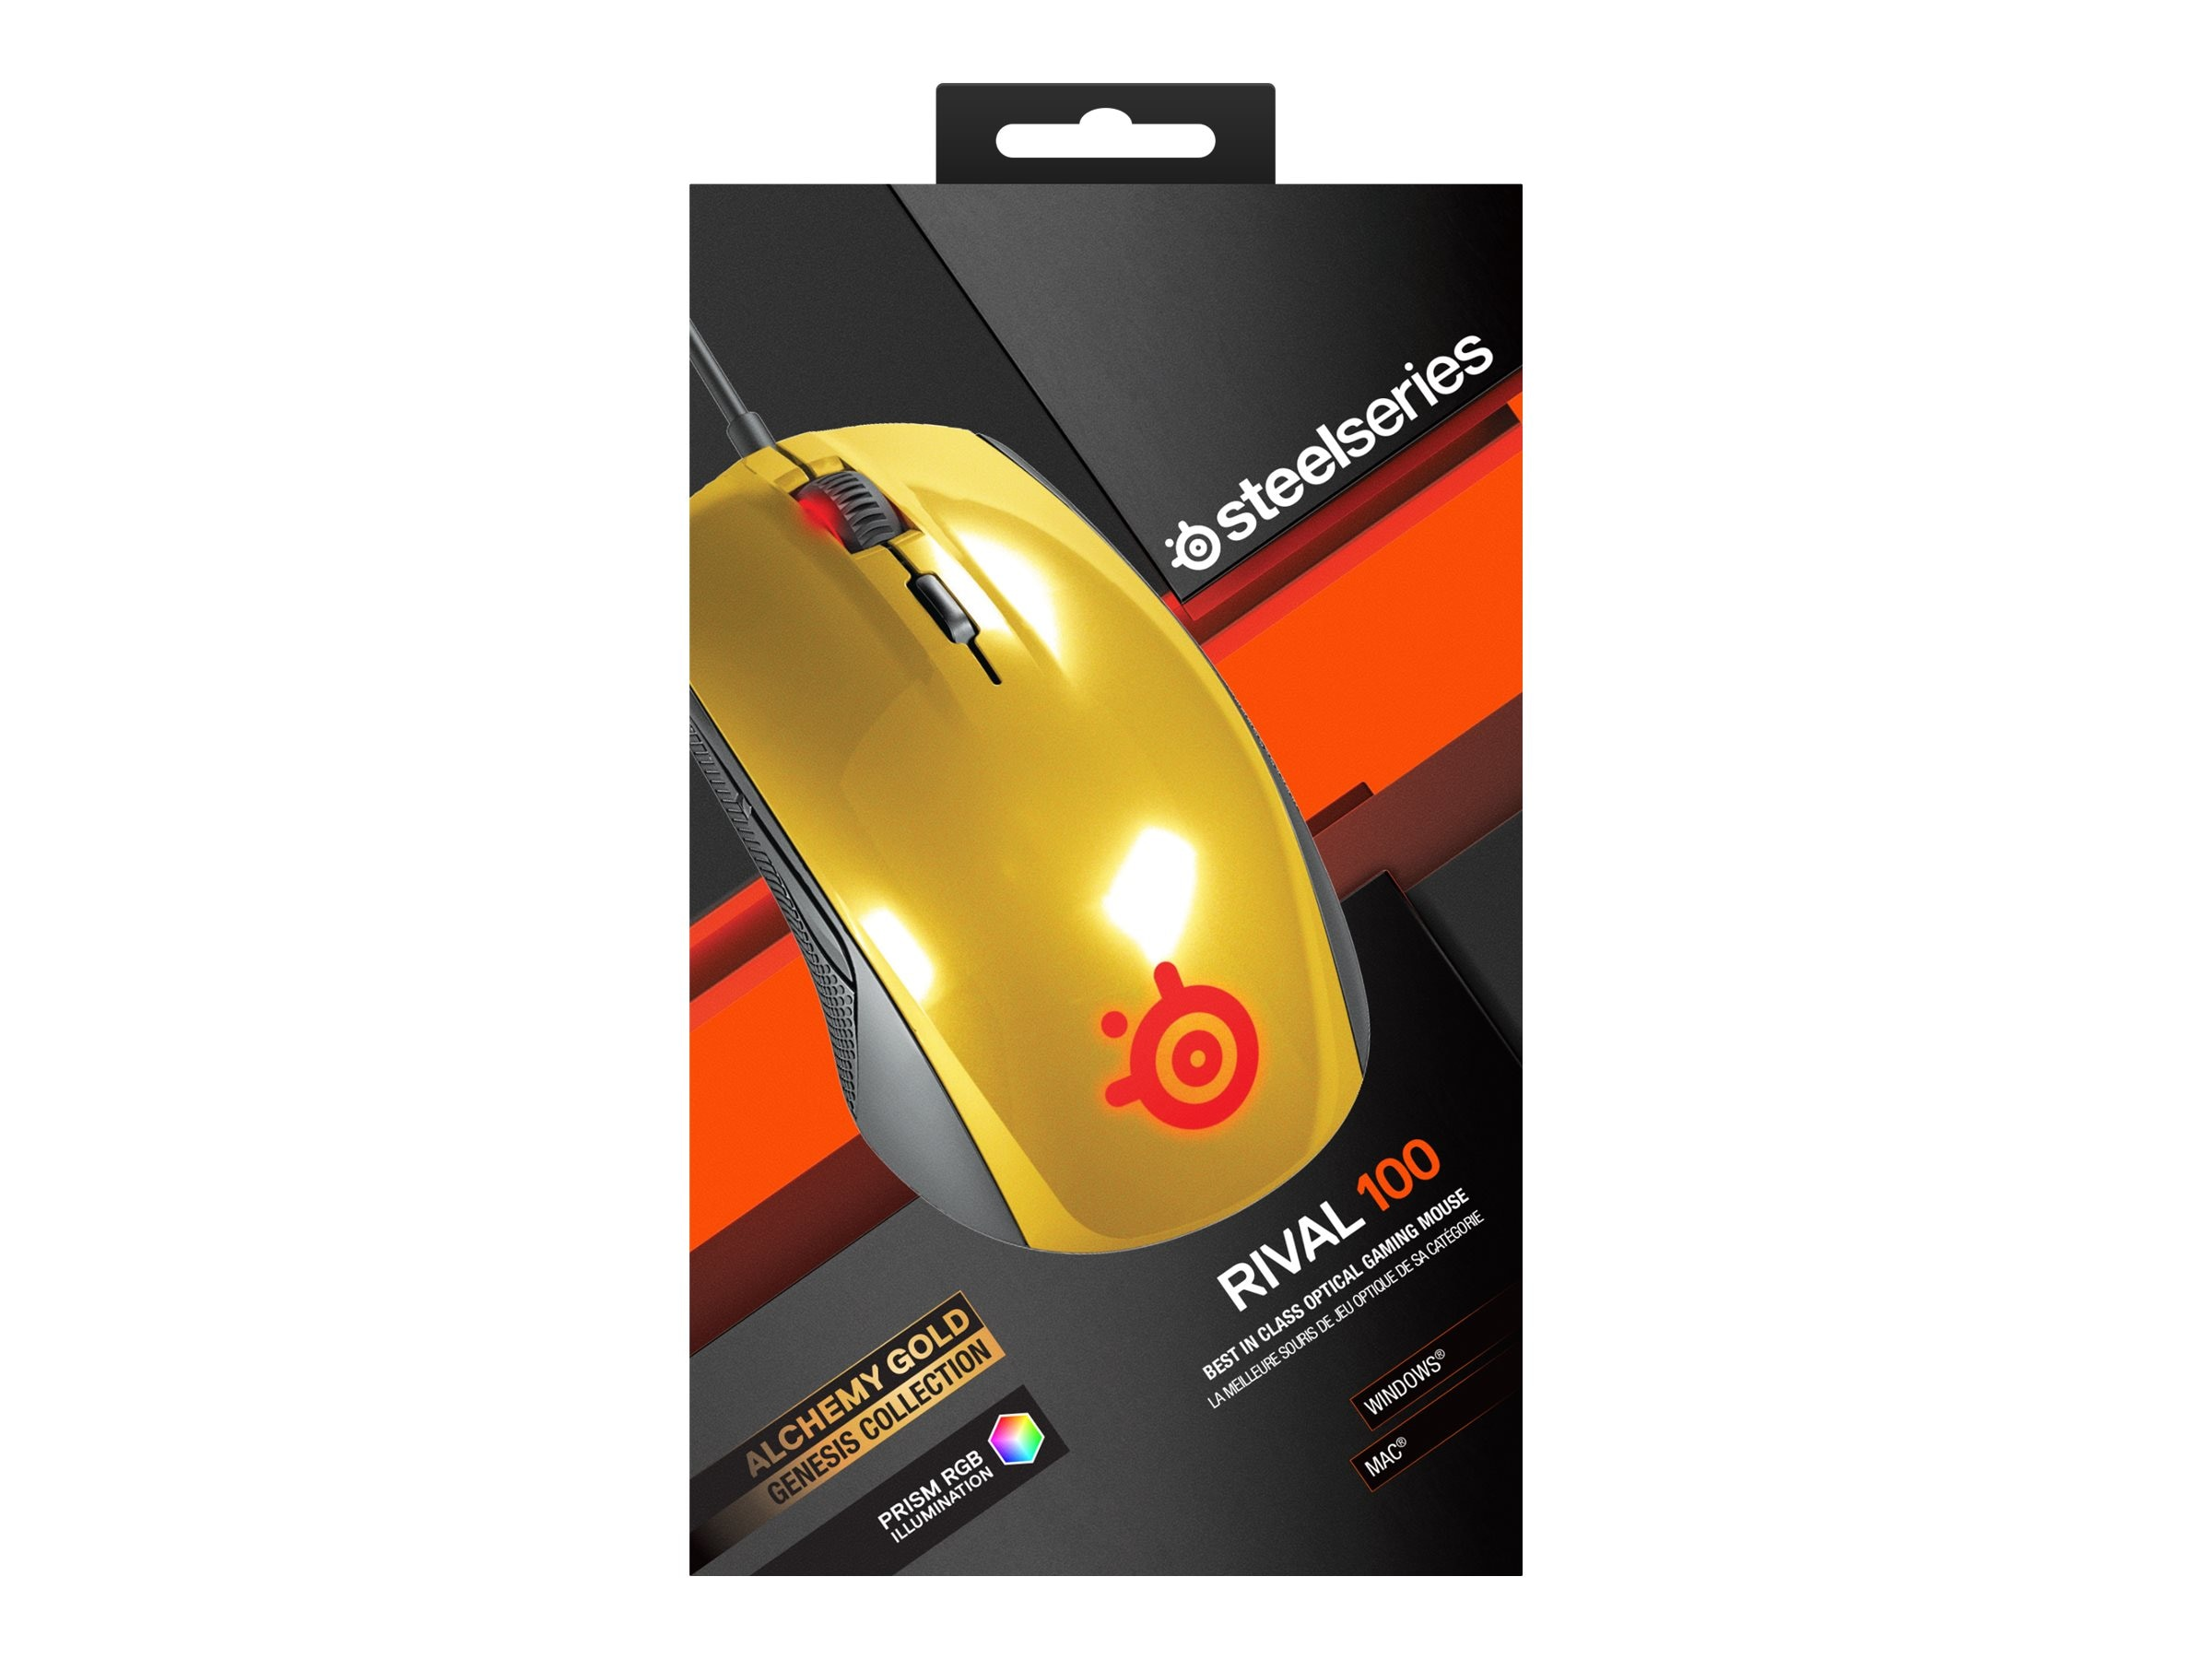 Steelseries 62336 Image 1